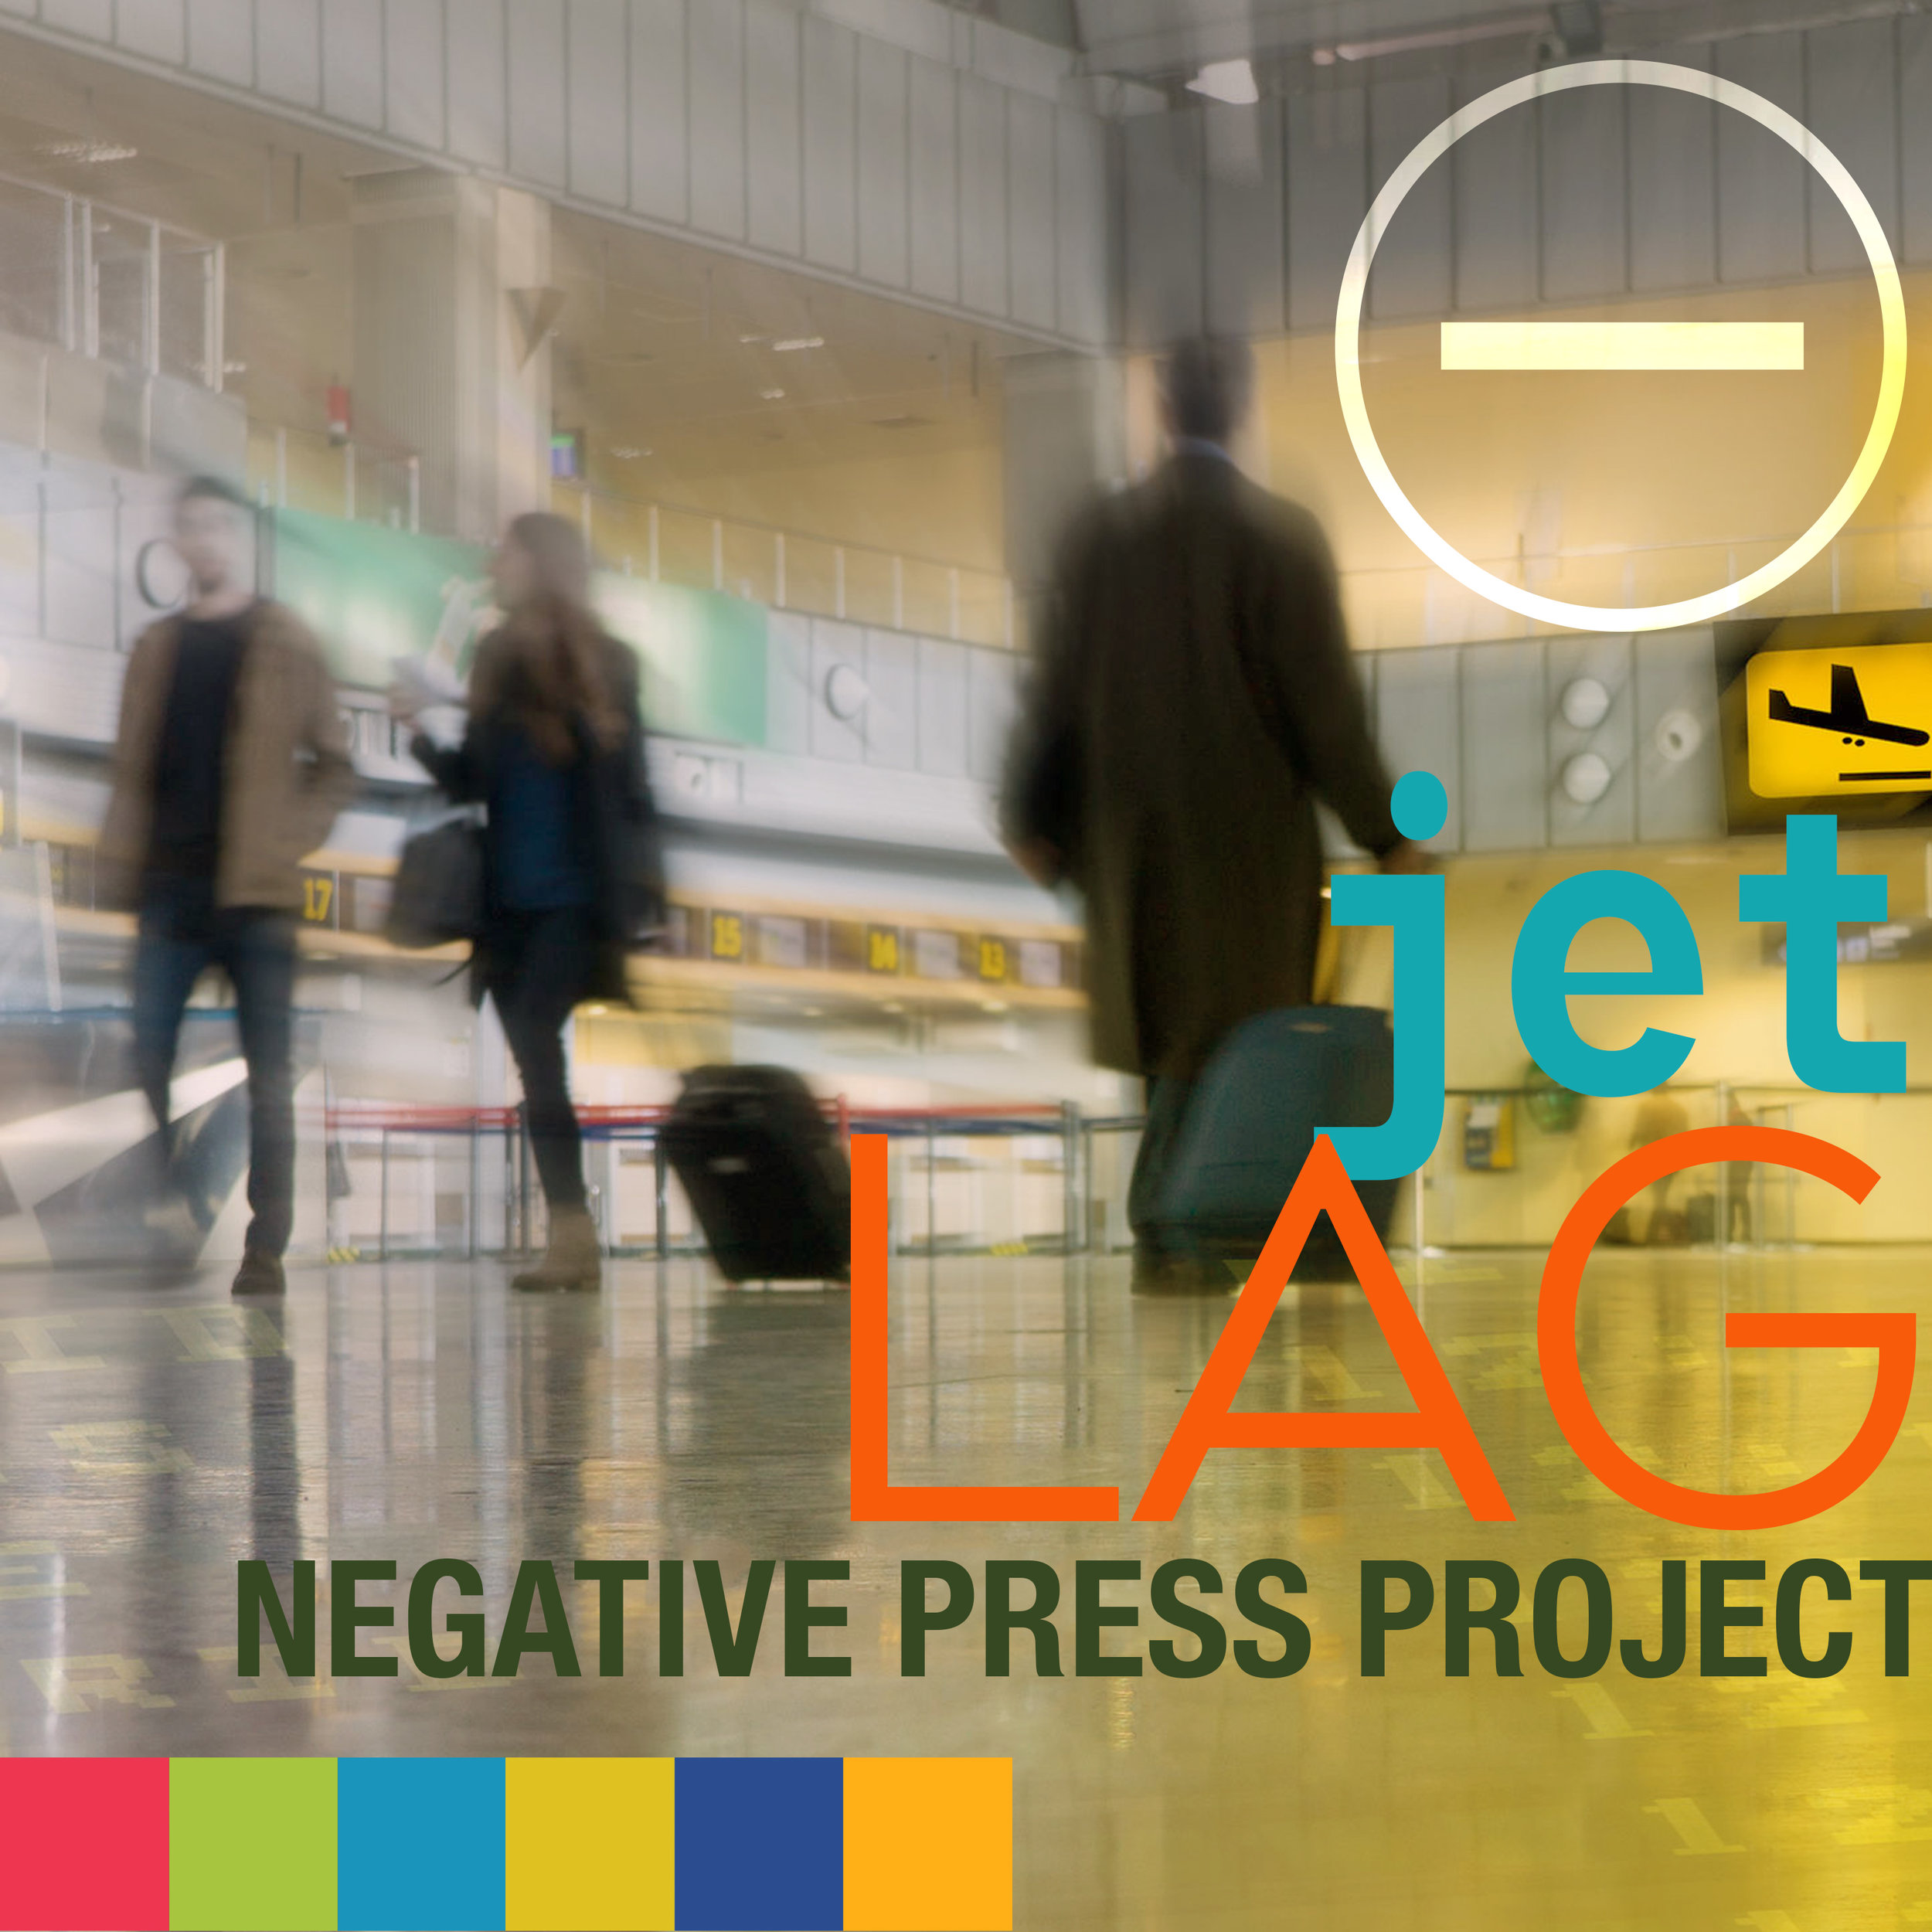 NEGATIVE PRESS PROJECT  jetlag (from forthcoming coming full-length release 'Within' 2019)